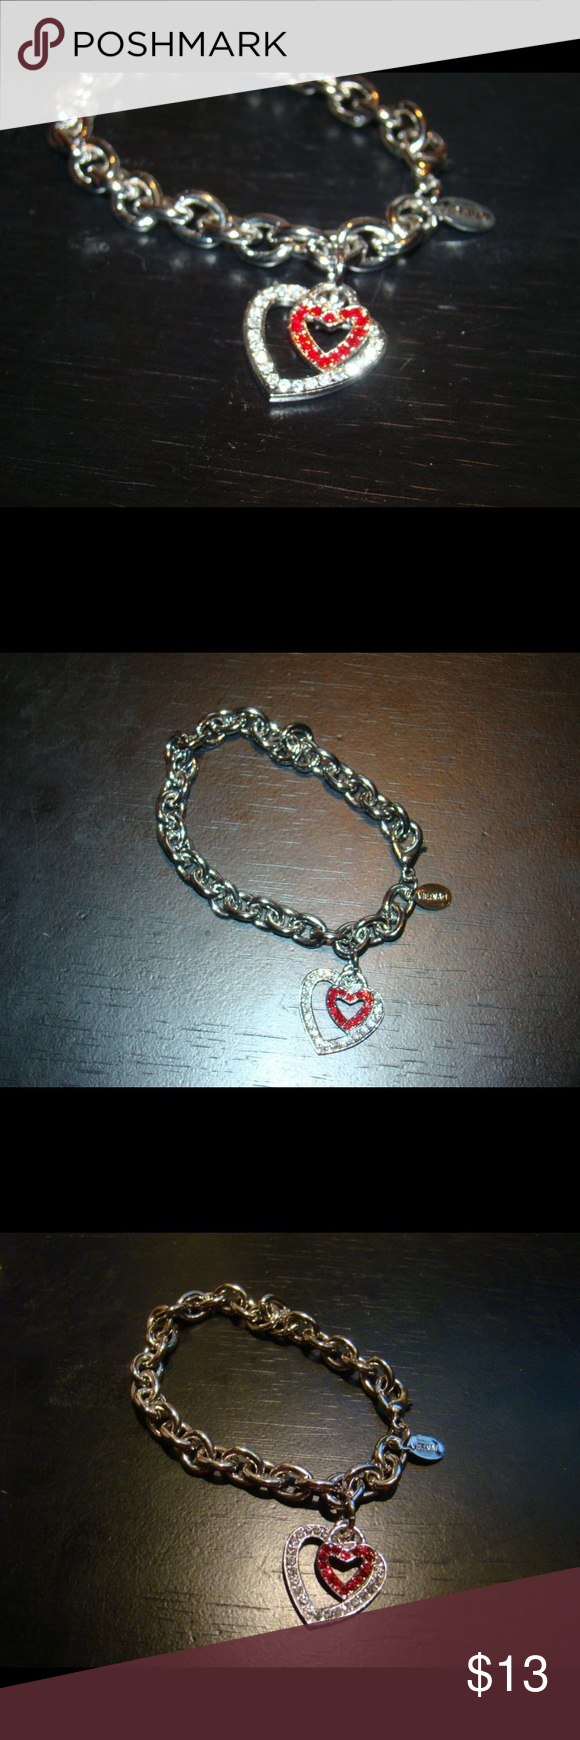 "Double Heart Bracelet This fits small wrists. I wear a 7"" bracelet and this is snug on me. Great for a young girl or thin wrist. Cookie Lee Jewelry Bracelets"